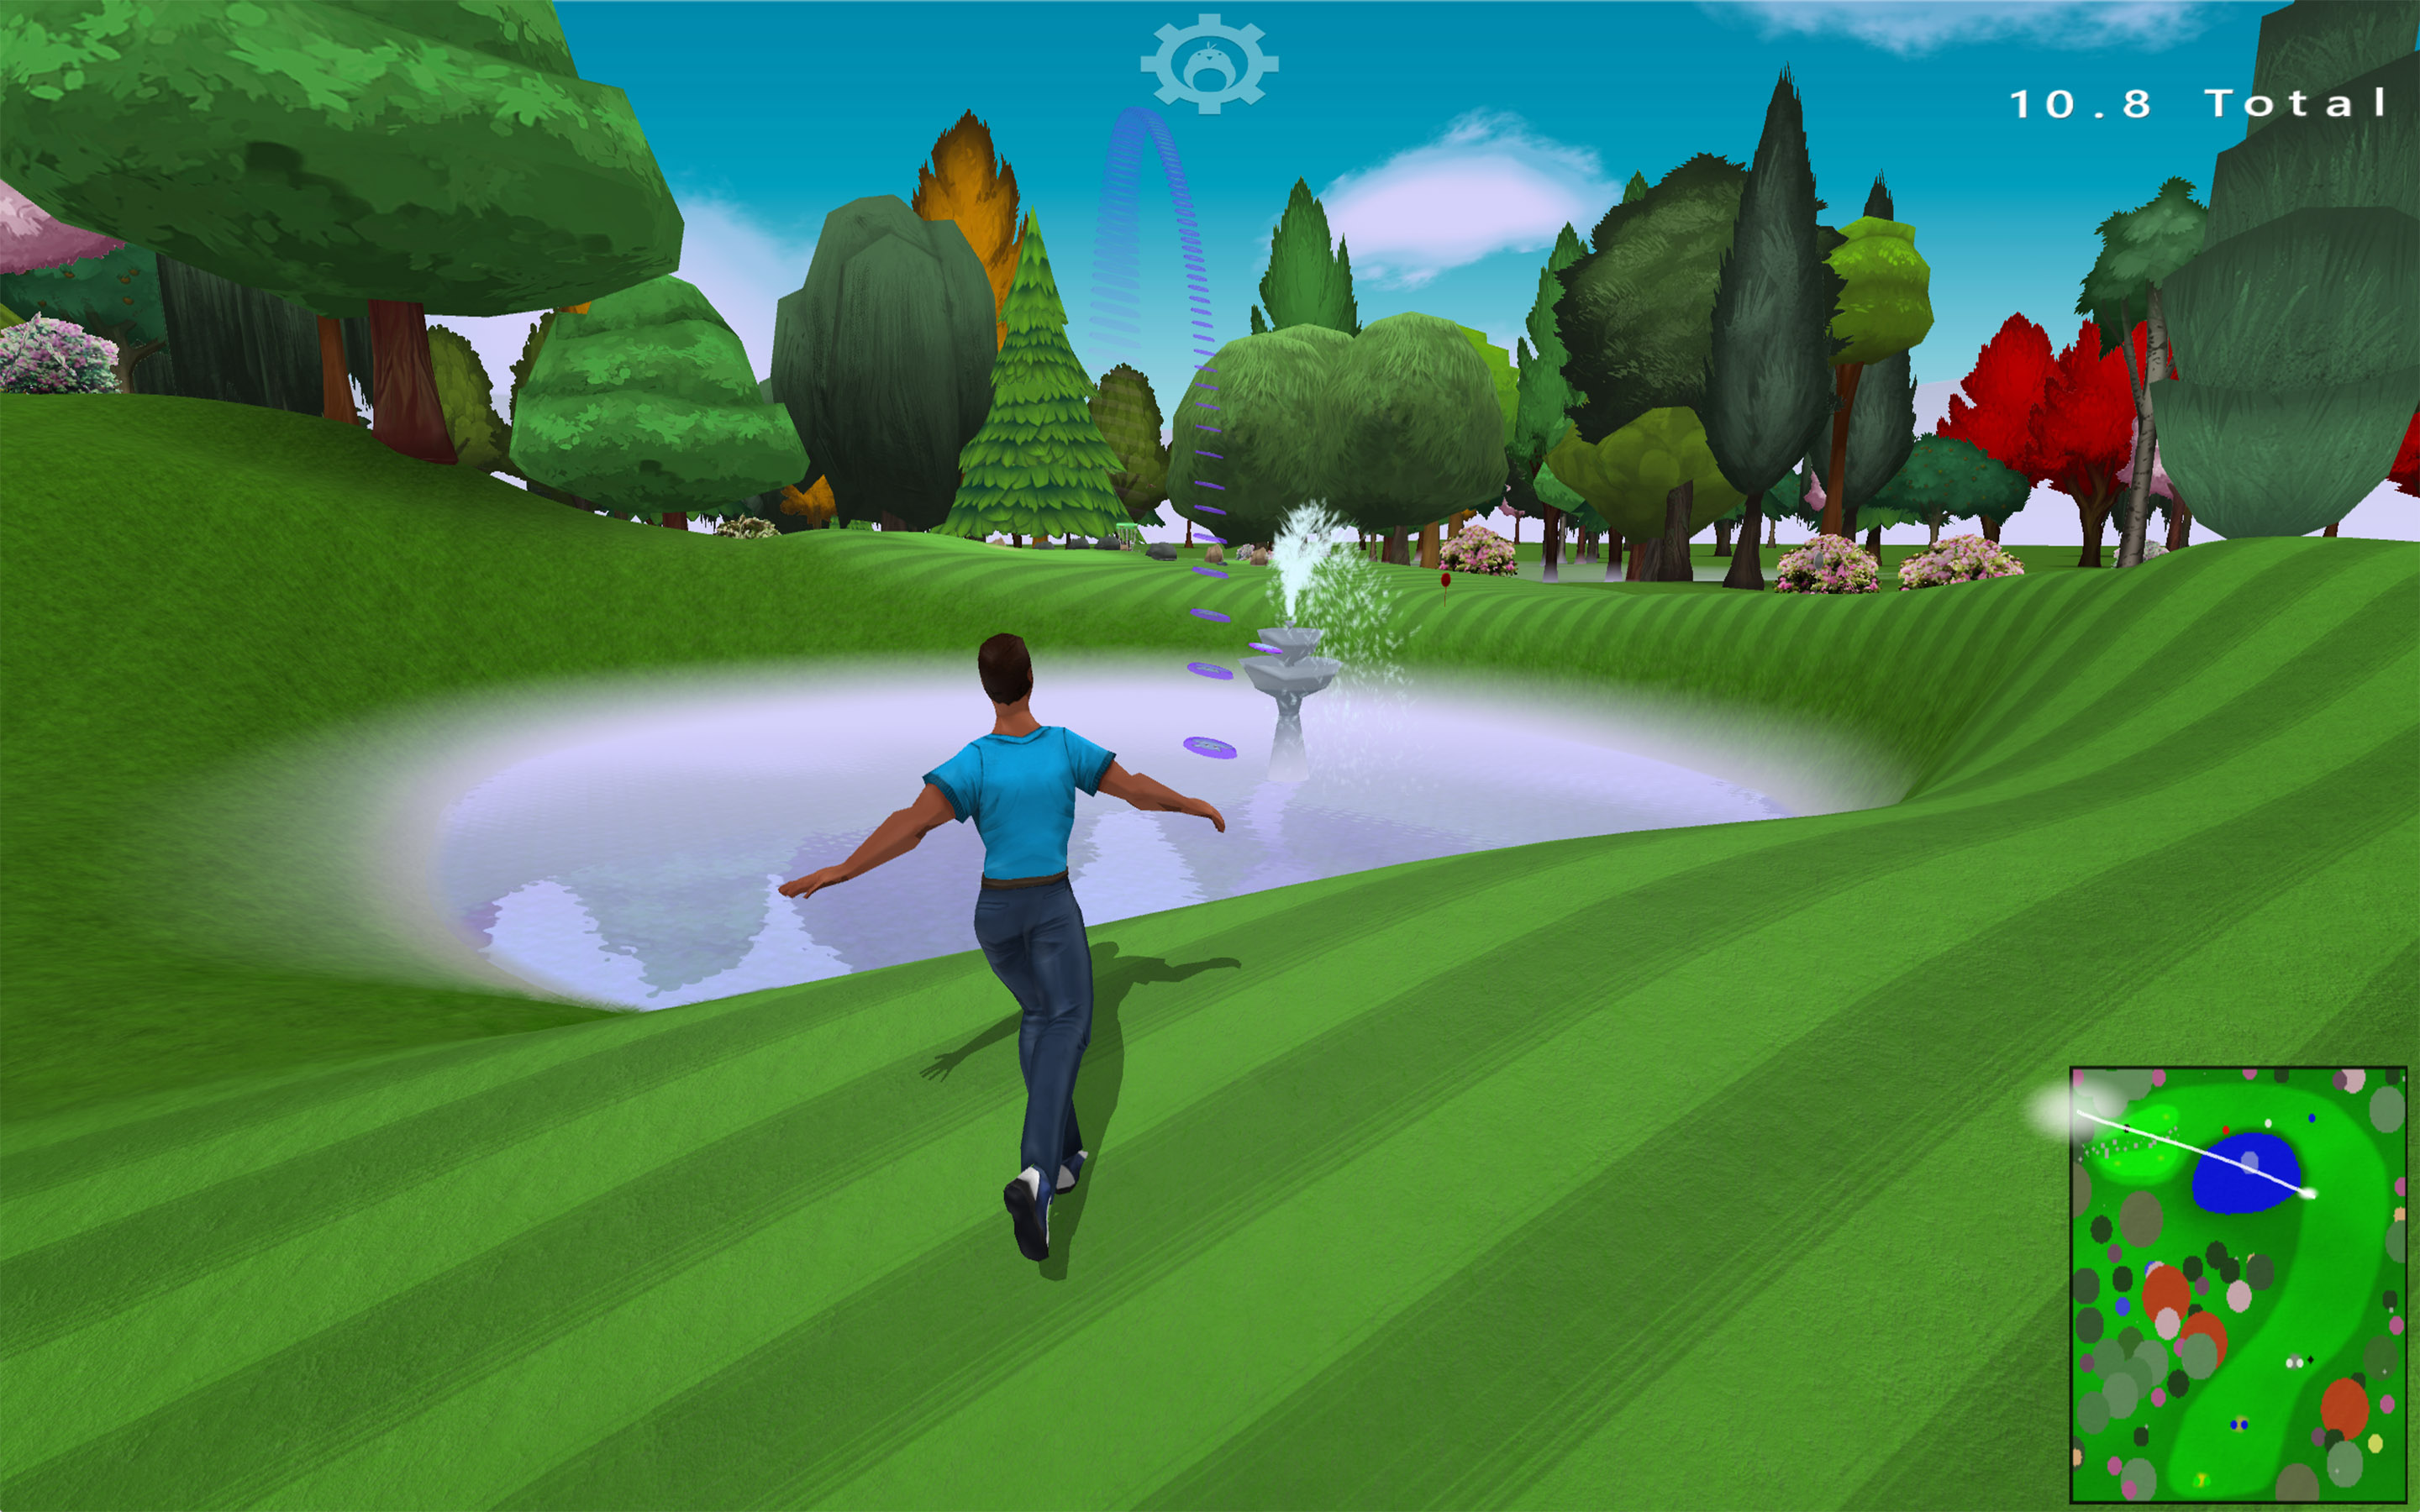 Total Disc Golf released for iPhone, iPad, and iPod Touch Image